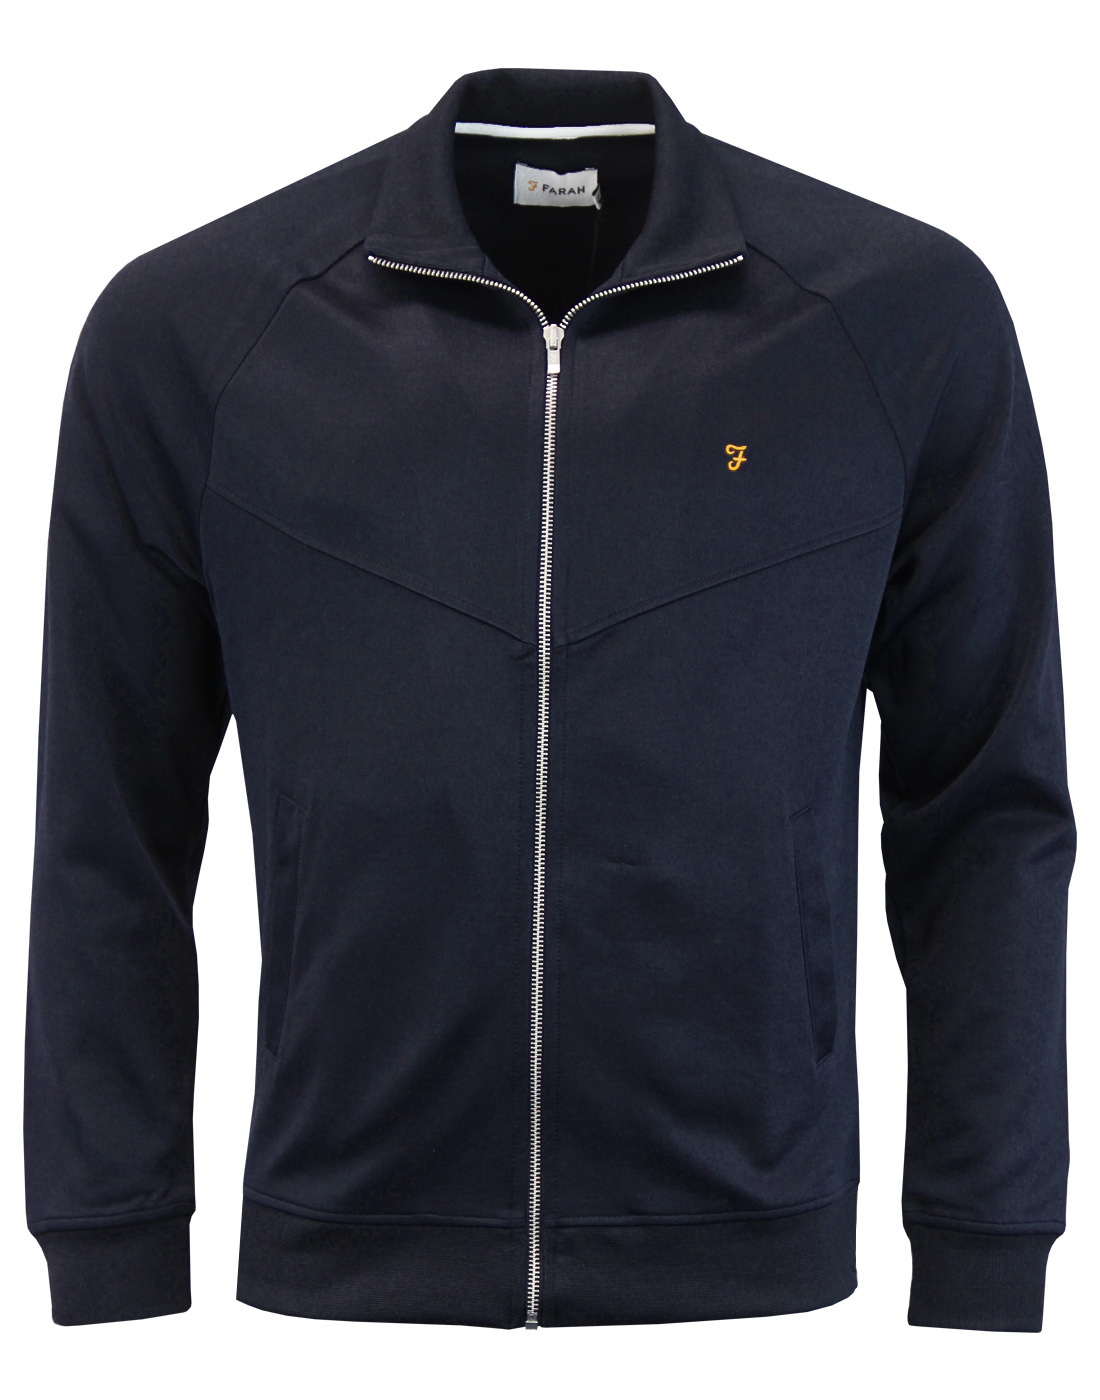 Lancaster FARAH Retro Chevron Zip Thru Track Top